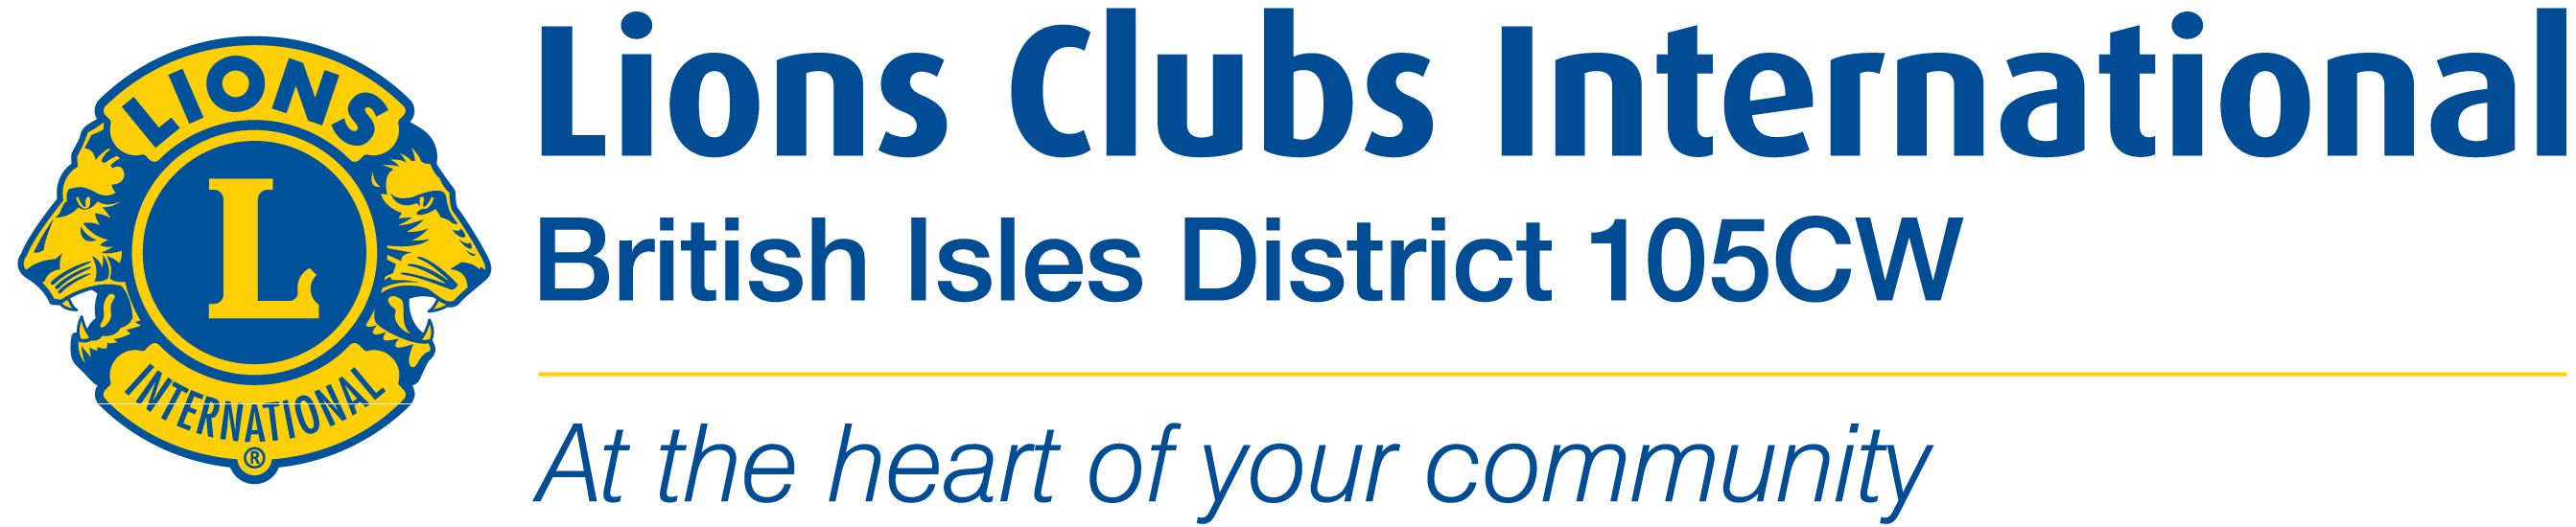 Lions Clubs International MD105 District CW